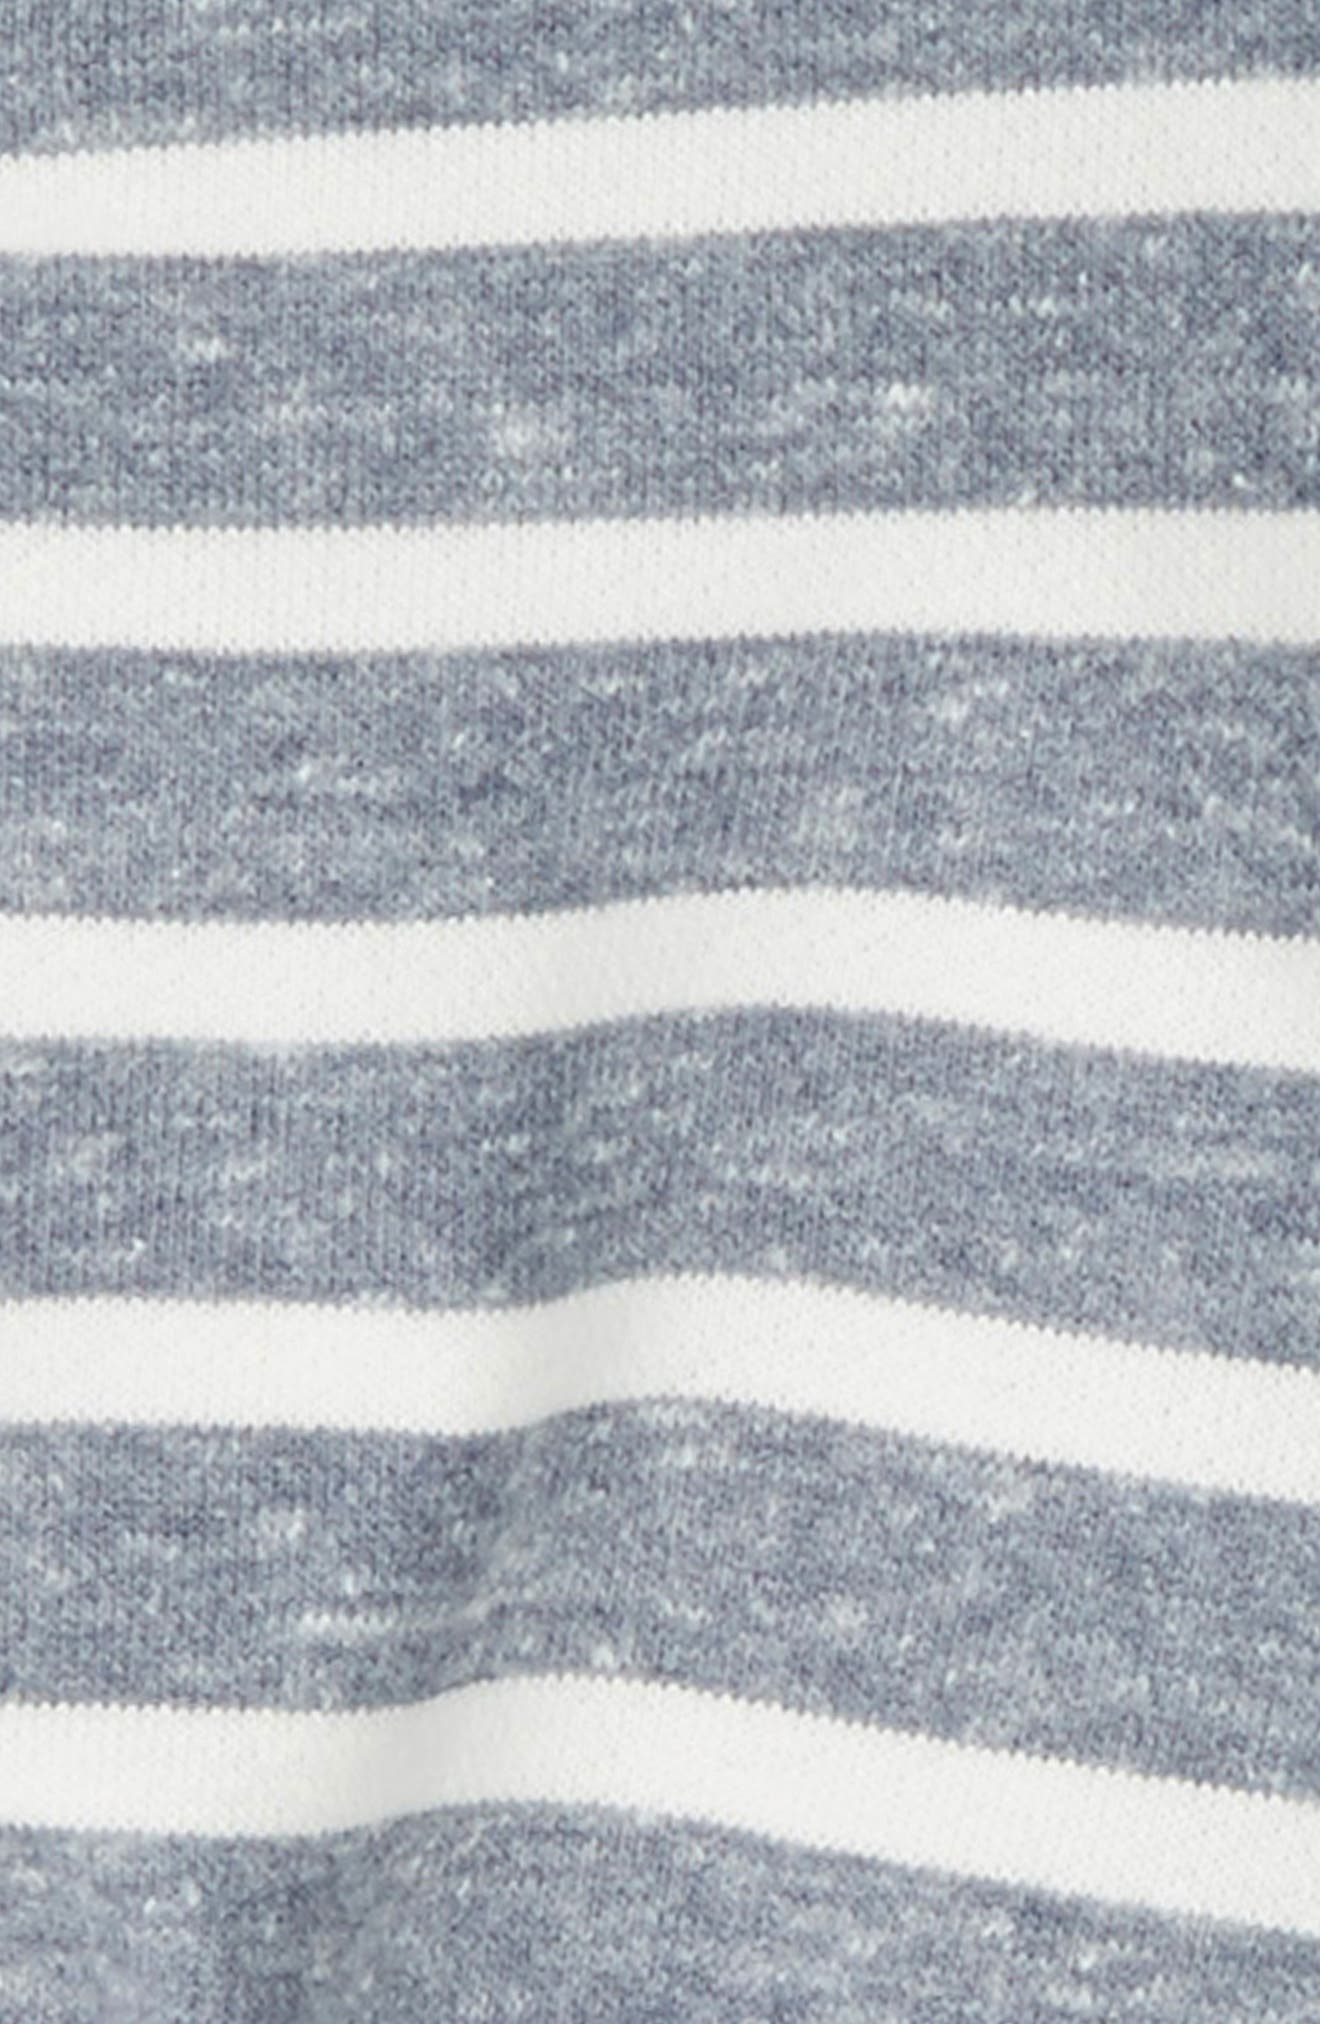 Stripe Sweatshirt & Denim Pants,                             Alternate thumbnail 2, color,                             402